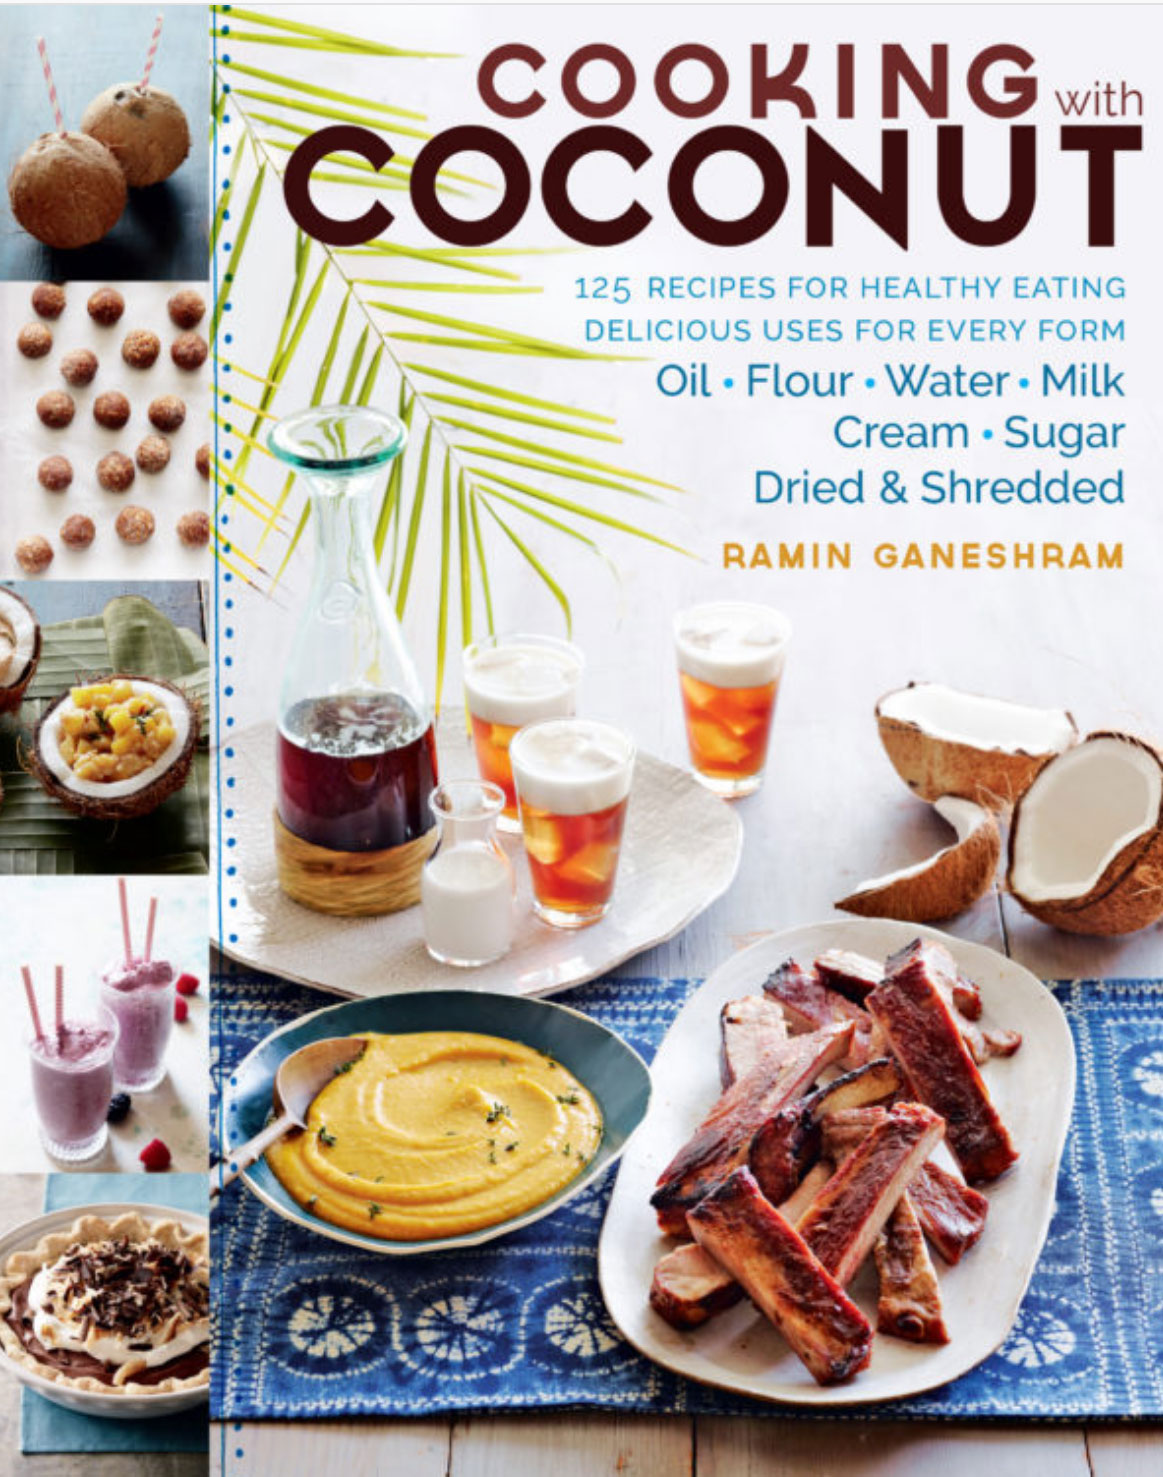 Cooking-With-Coconut-Cover.jpg